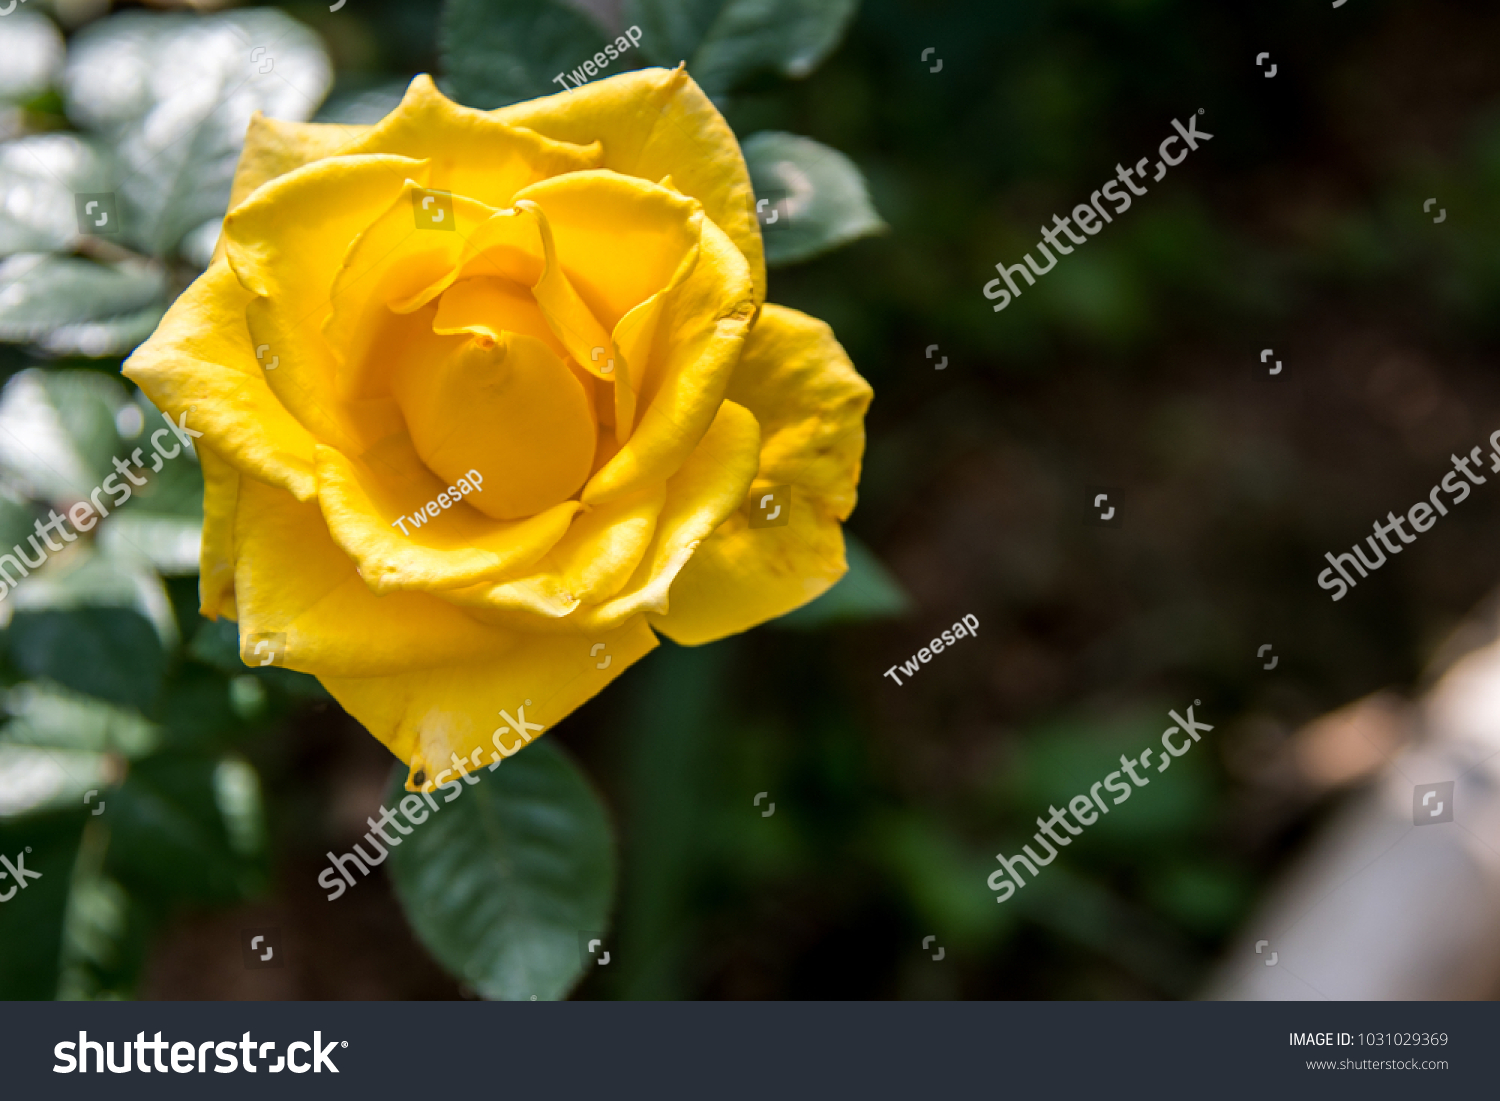 Beautiful yellow rose flower in a garden ez canvas id 1031029369 izmirmasajfo